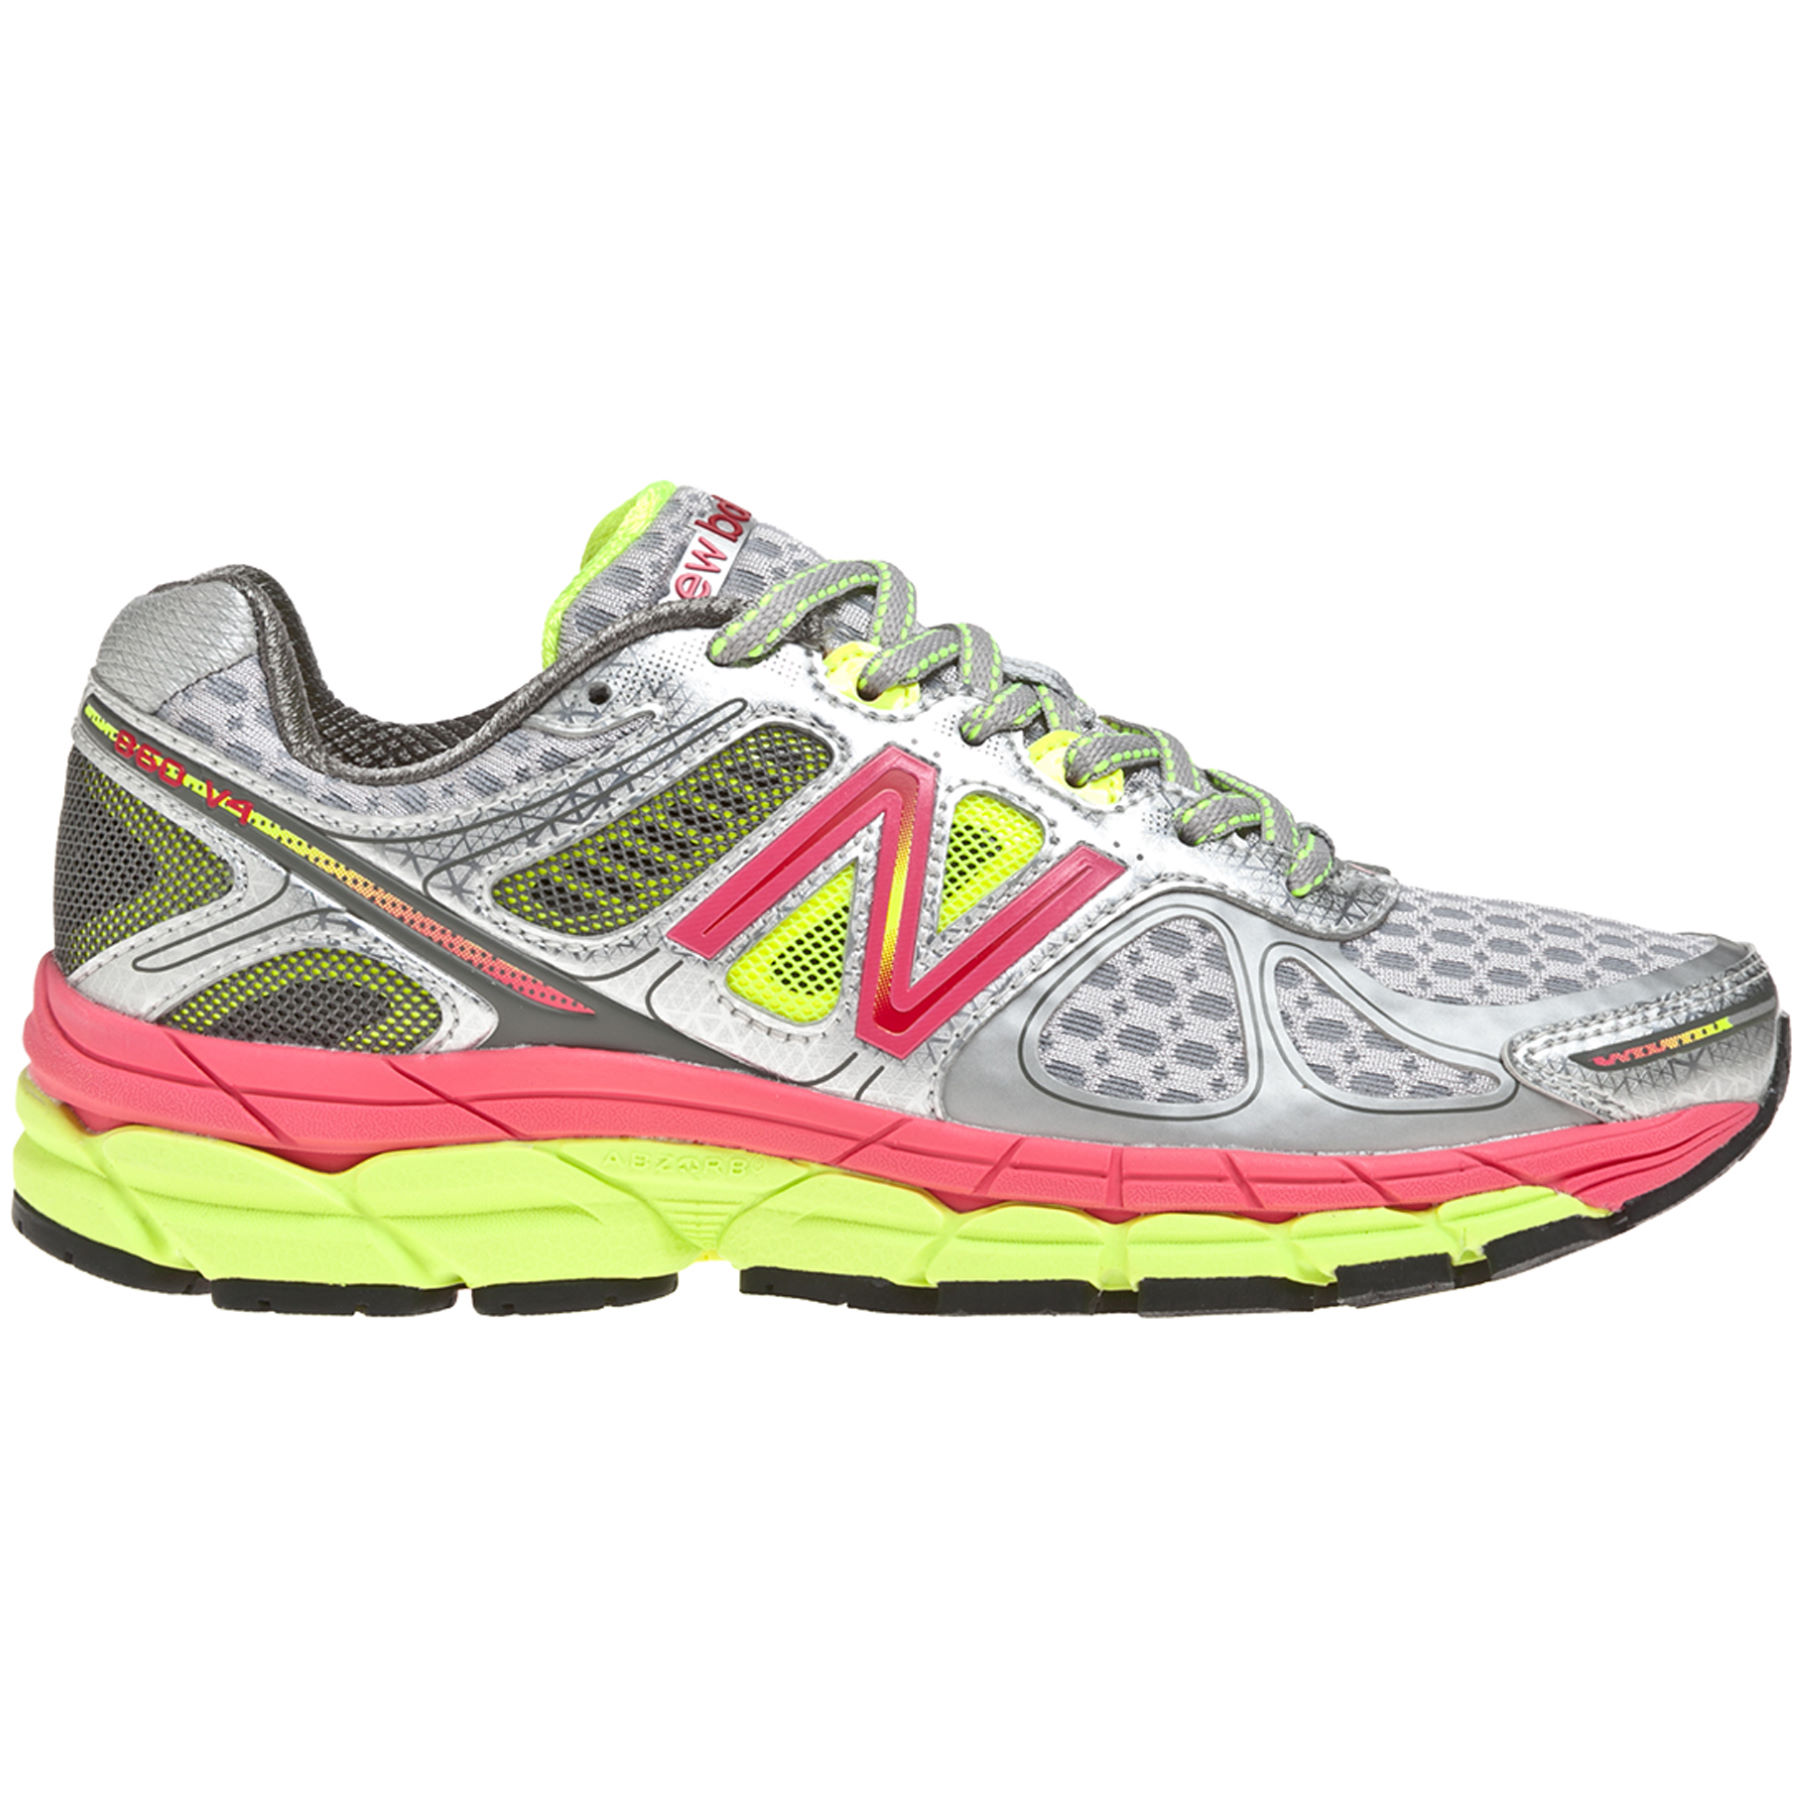 Womens Running Shoes In Wide 19